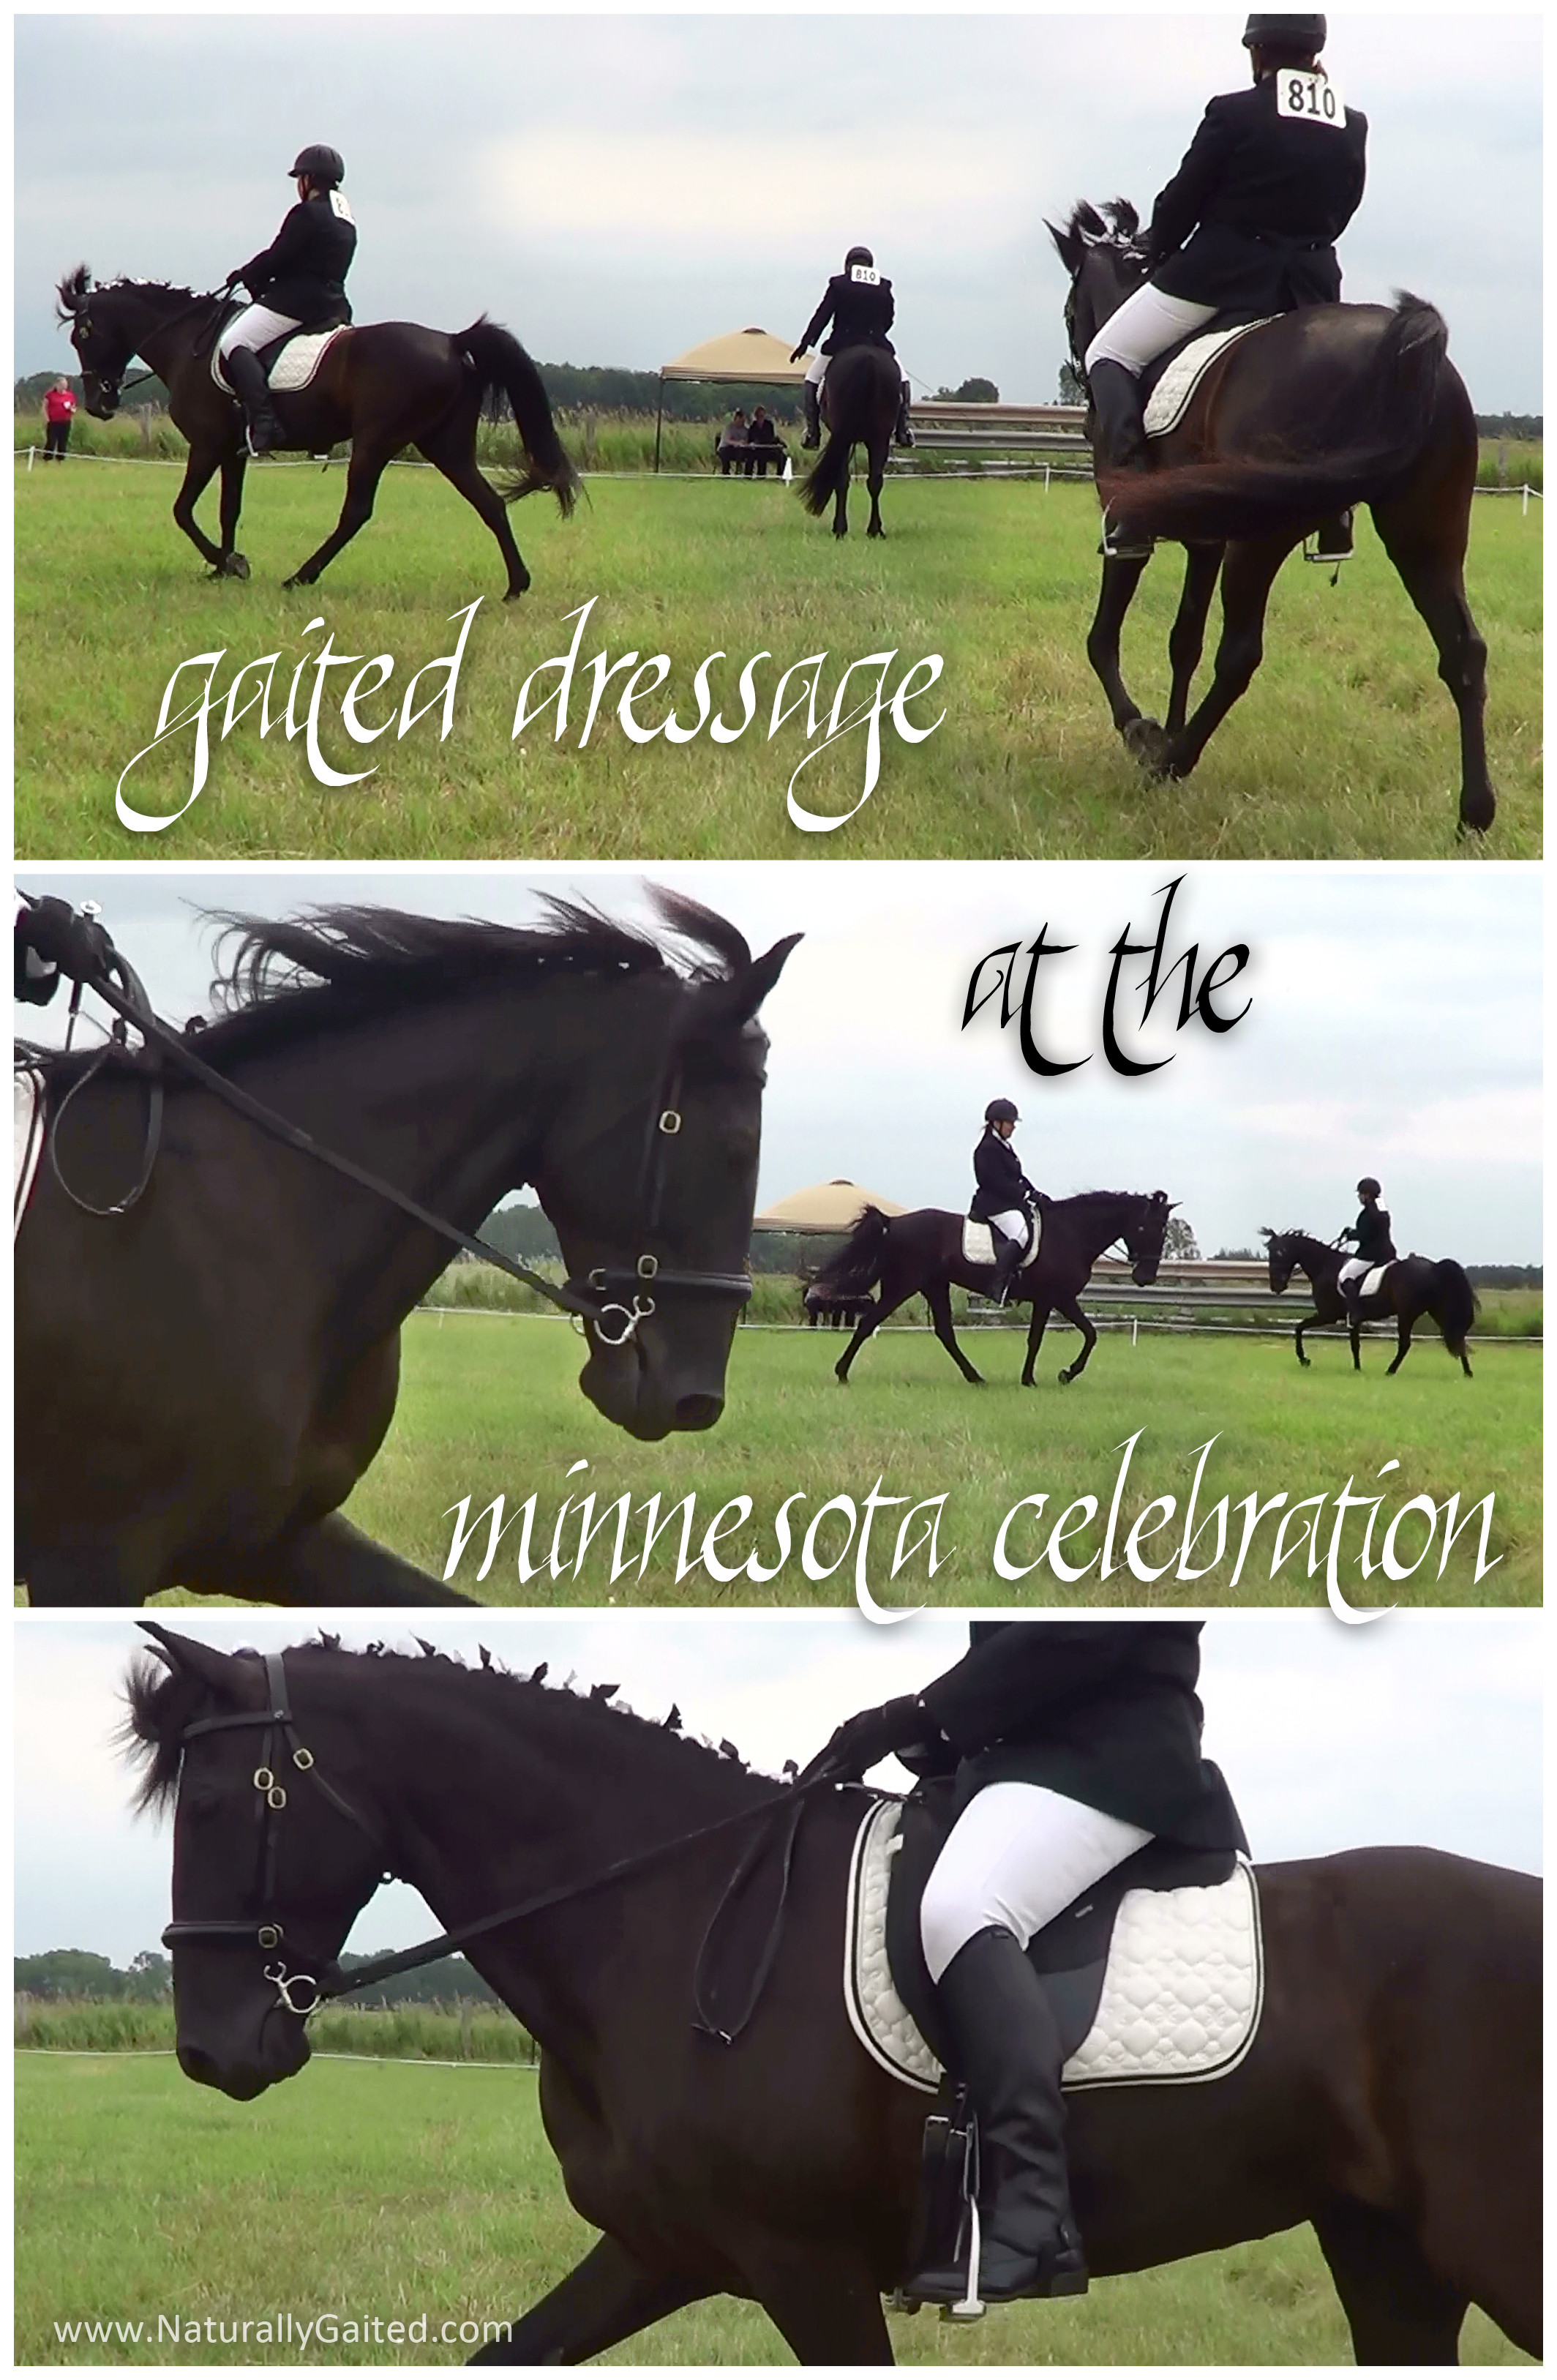 2014 MN Celebration offers Gaited Dressage